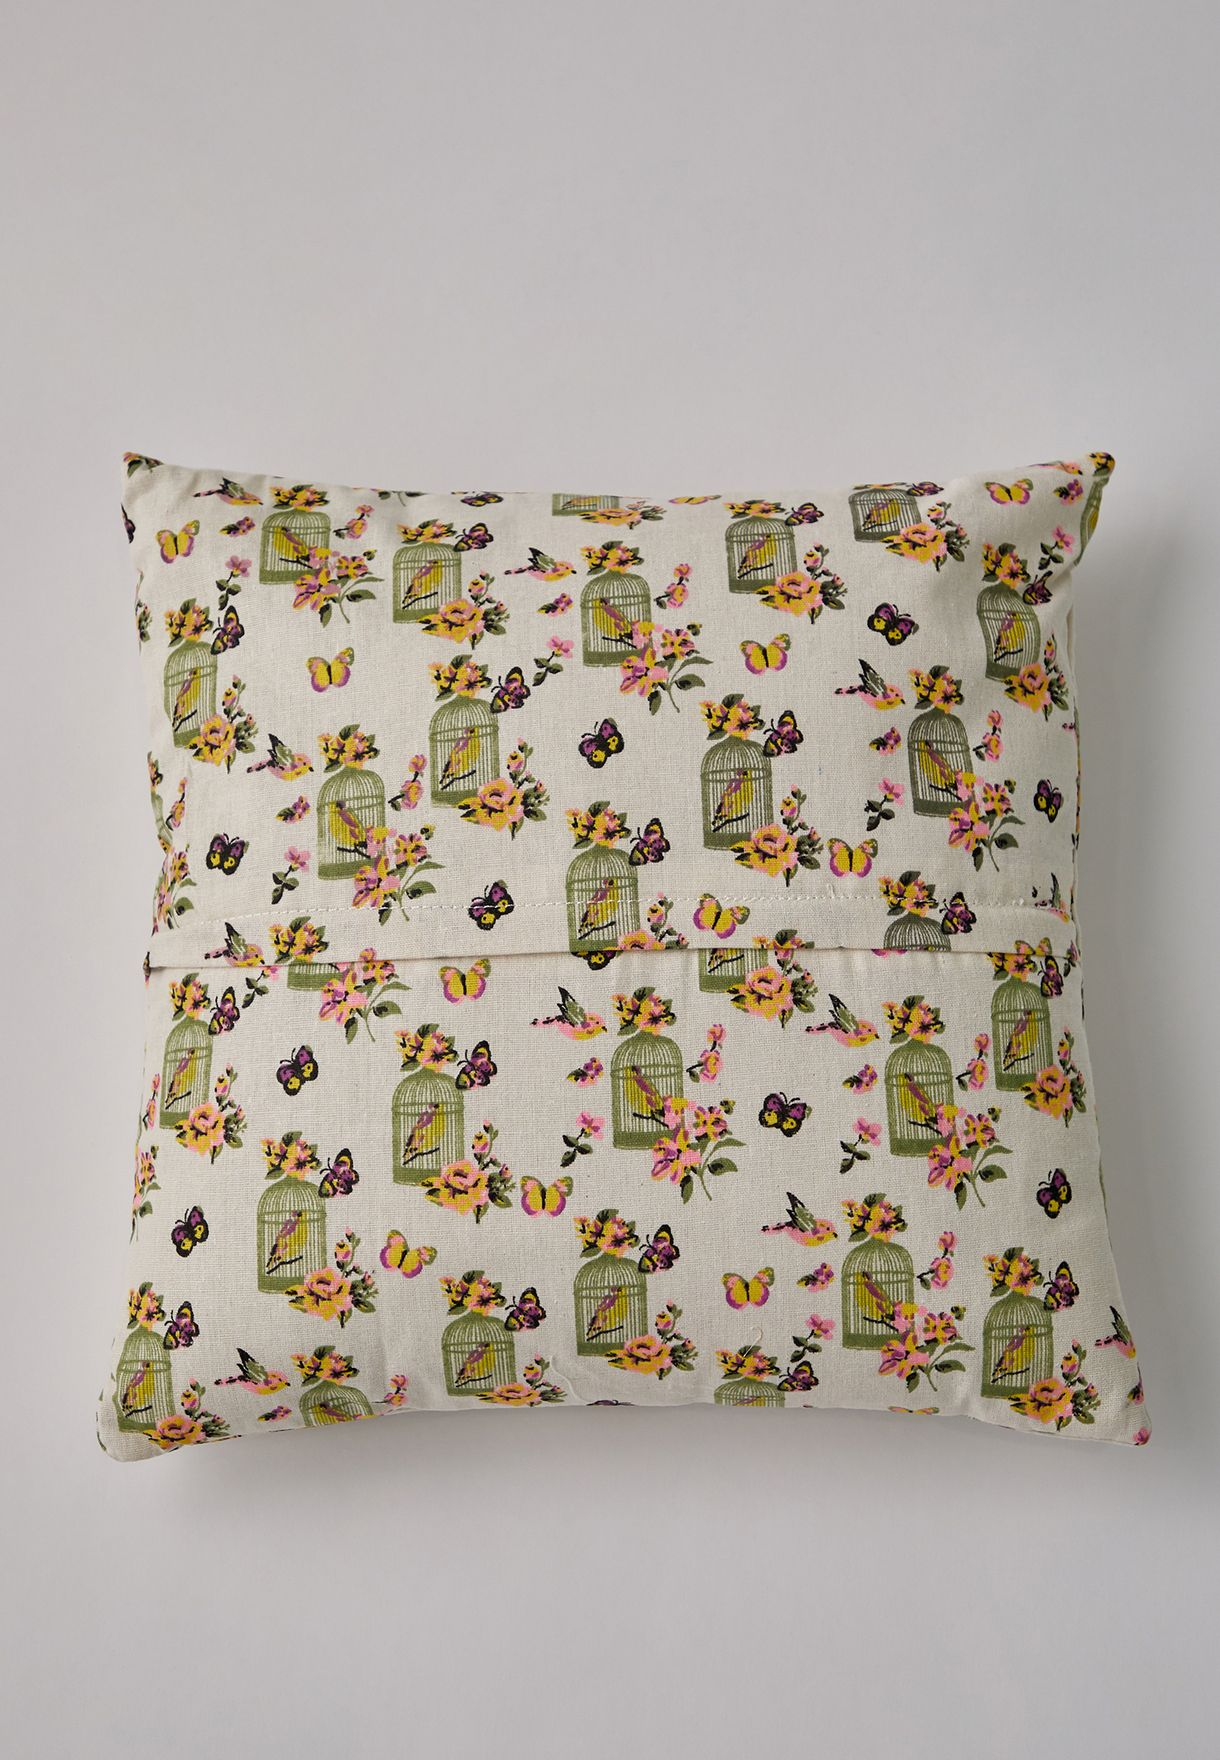 Bird Floral Printed Cushion With Insert 45x45 cm